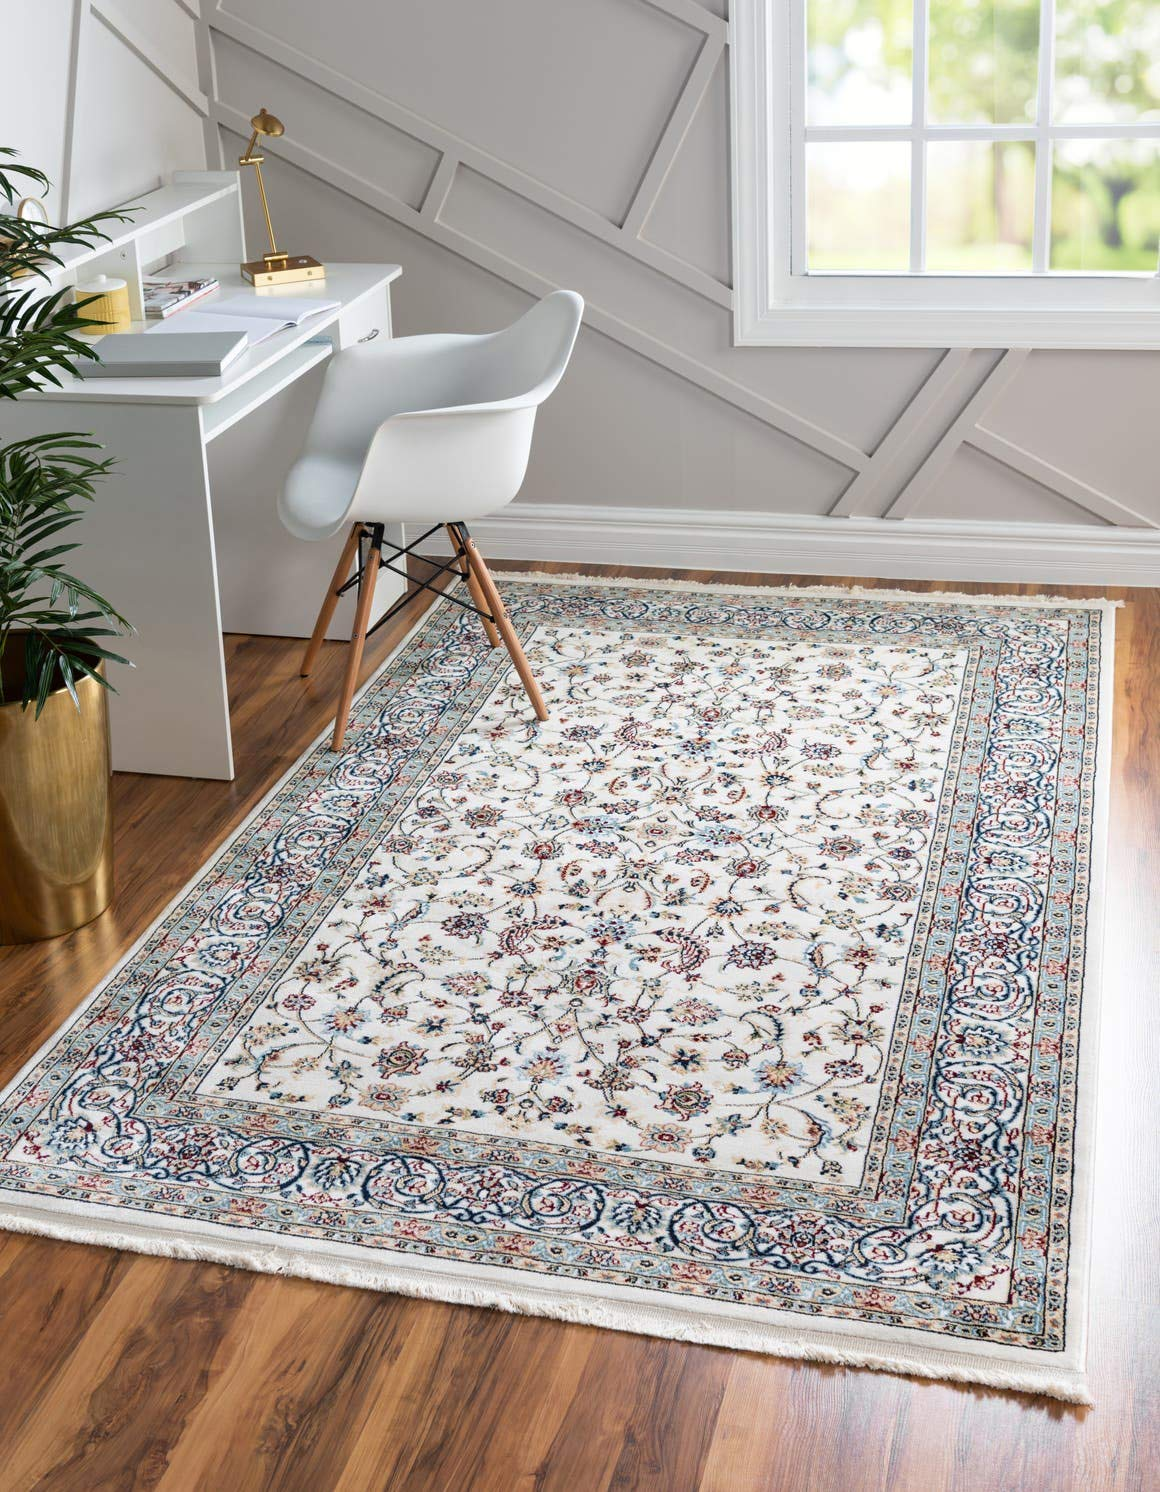 Unique Loom Narenj Collection Classic Traditional Repeating Pattern Ivory Area Rug 3 0 x 5 0